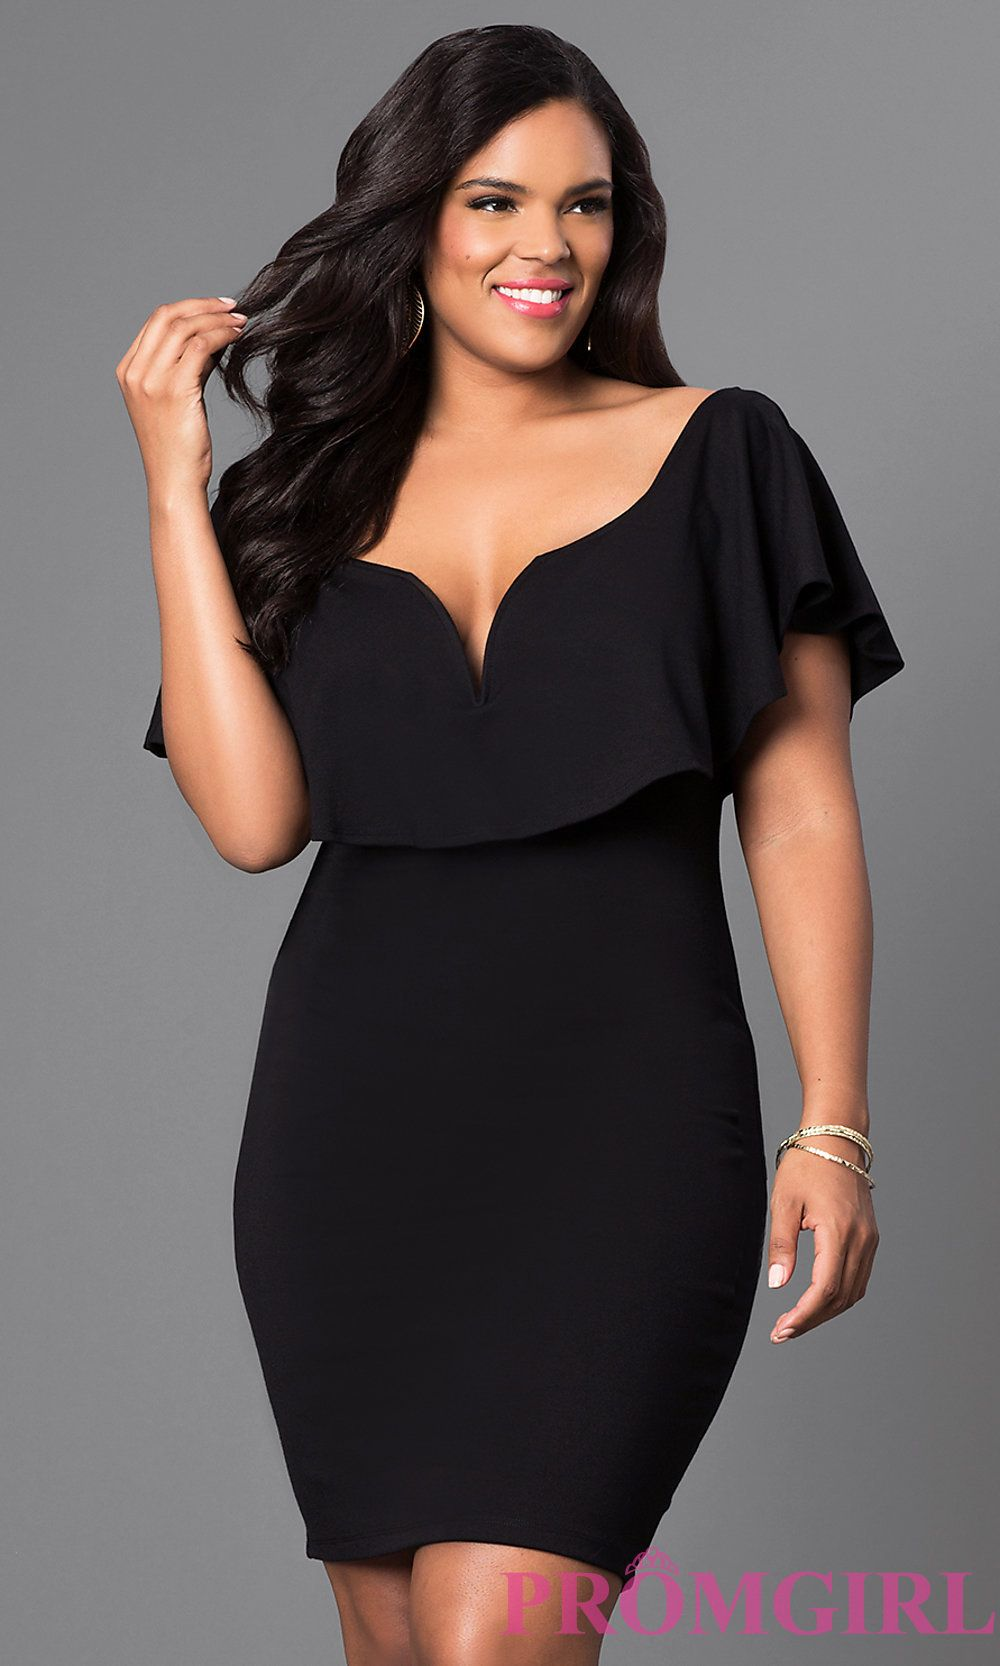 Plus size dresses for a wedding  Imagen relacionada  Vestiditos  Pinterest  Curvy Vestidos and